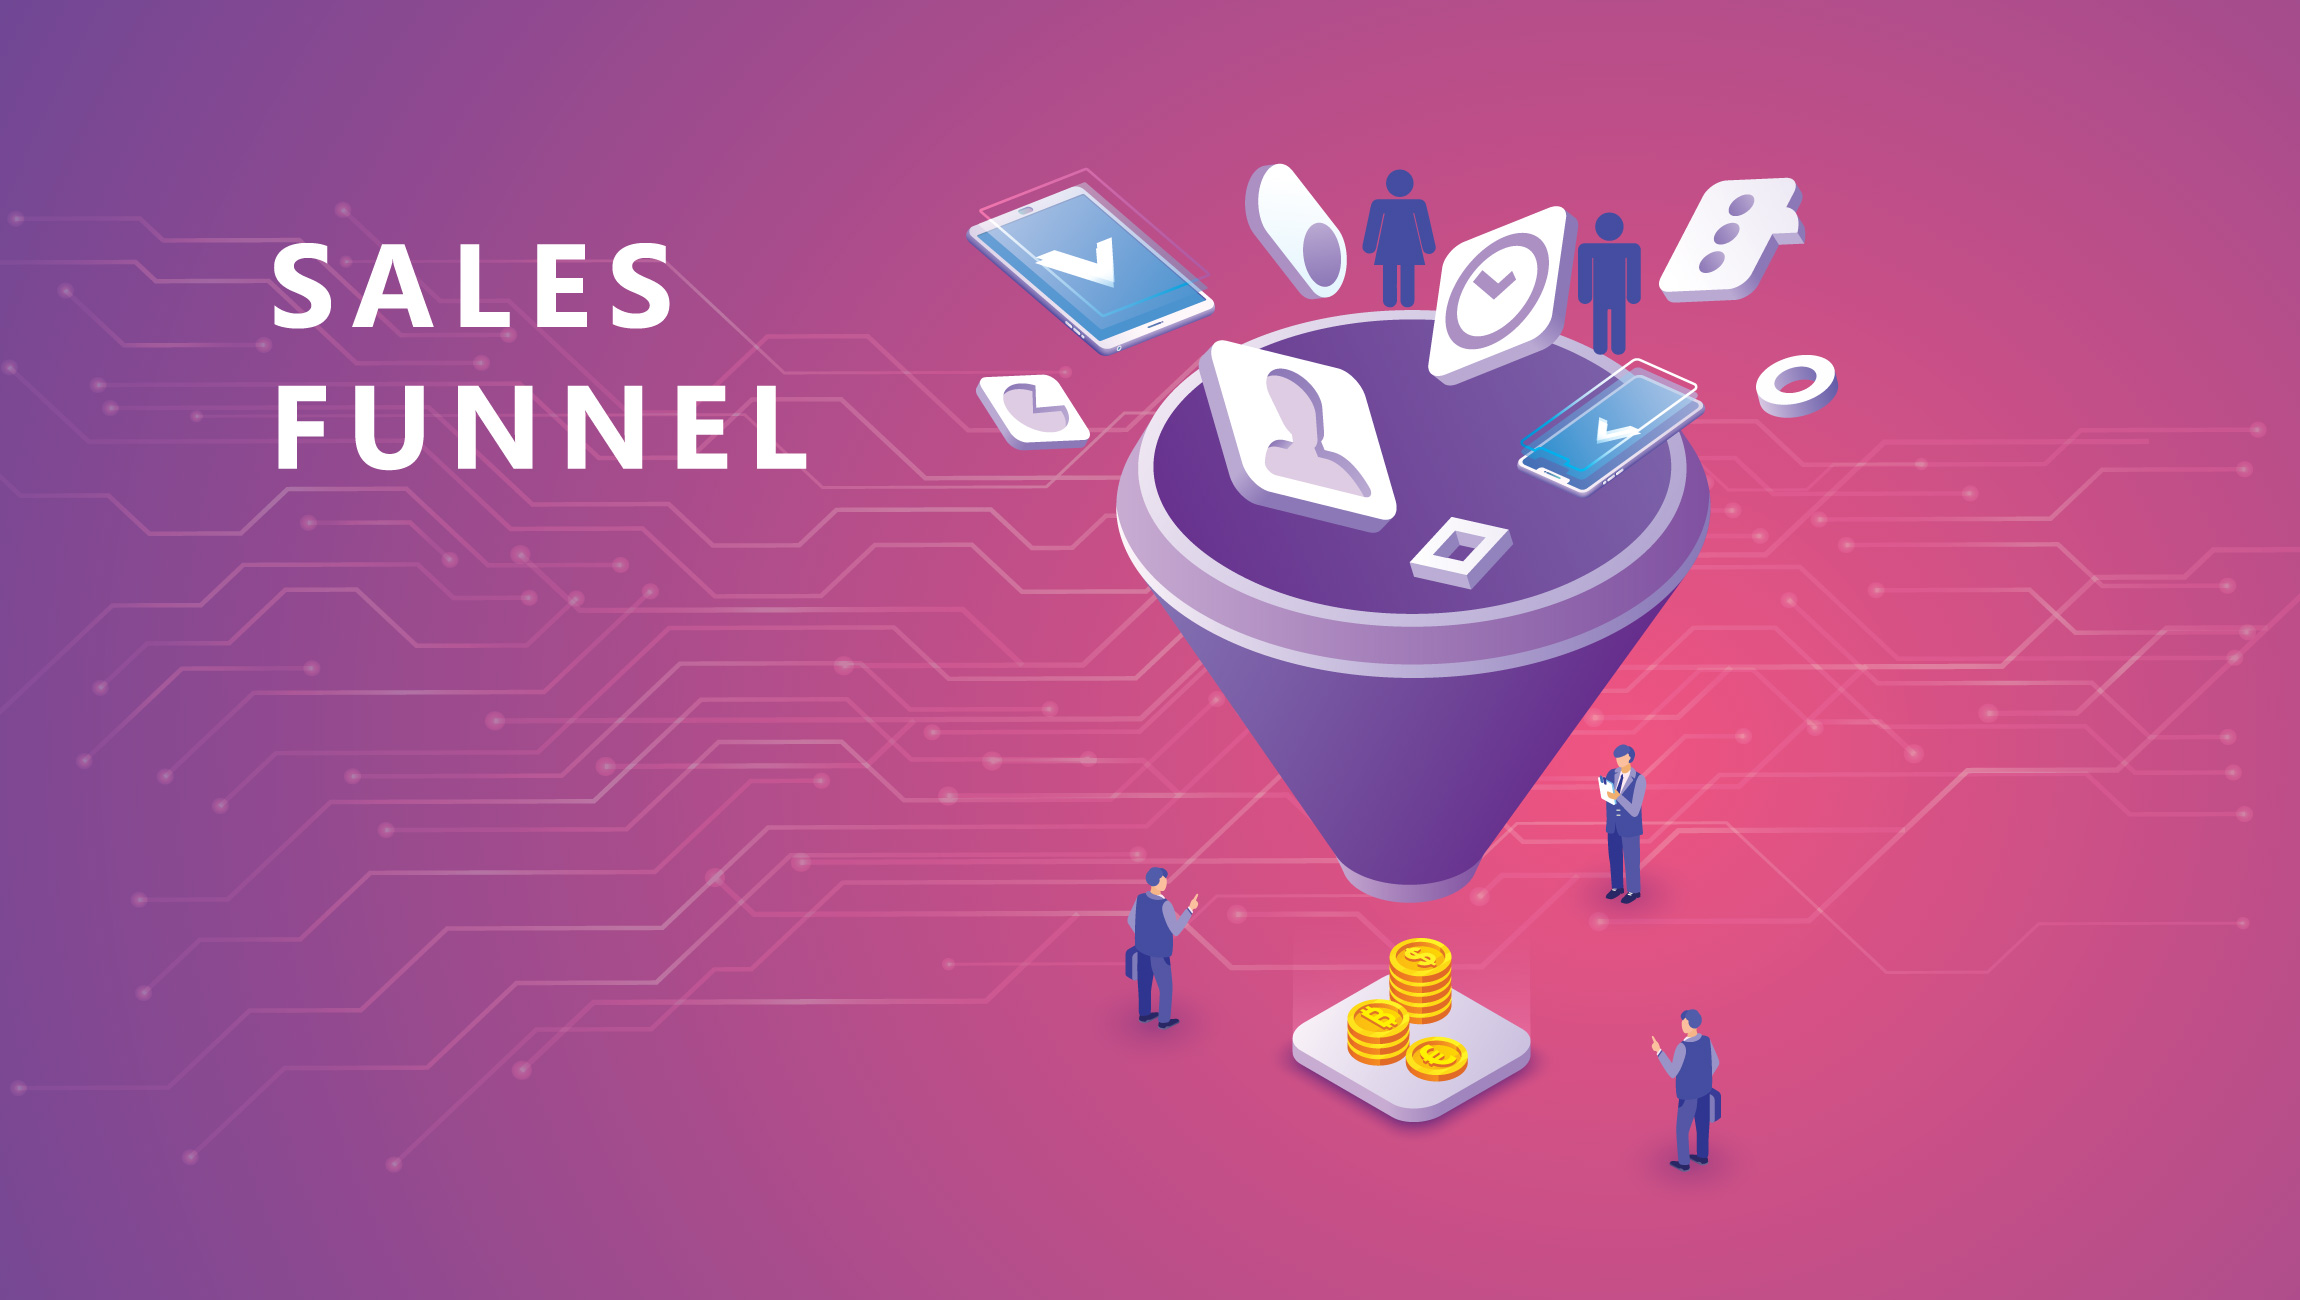 How to Align Content Down the Sales Funnel